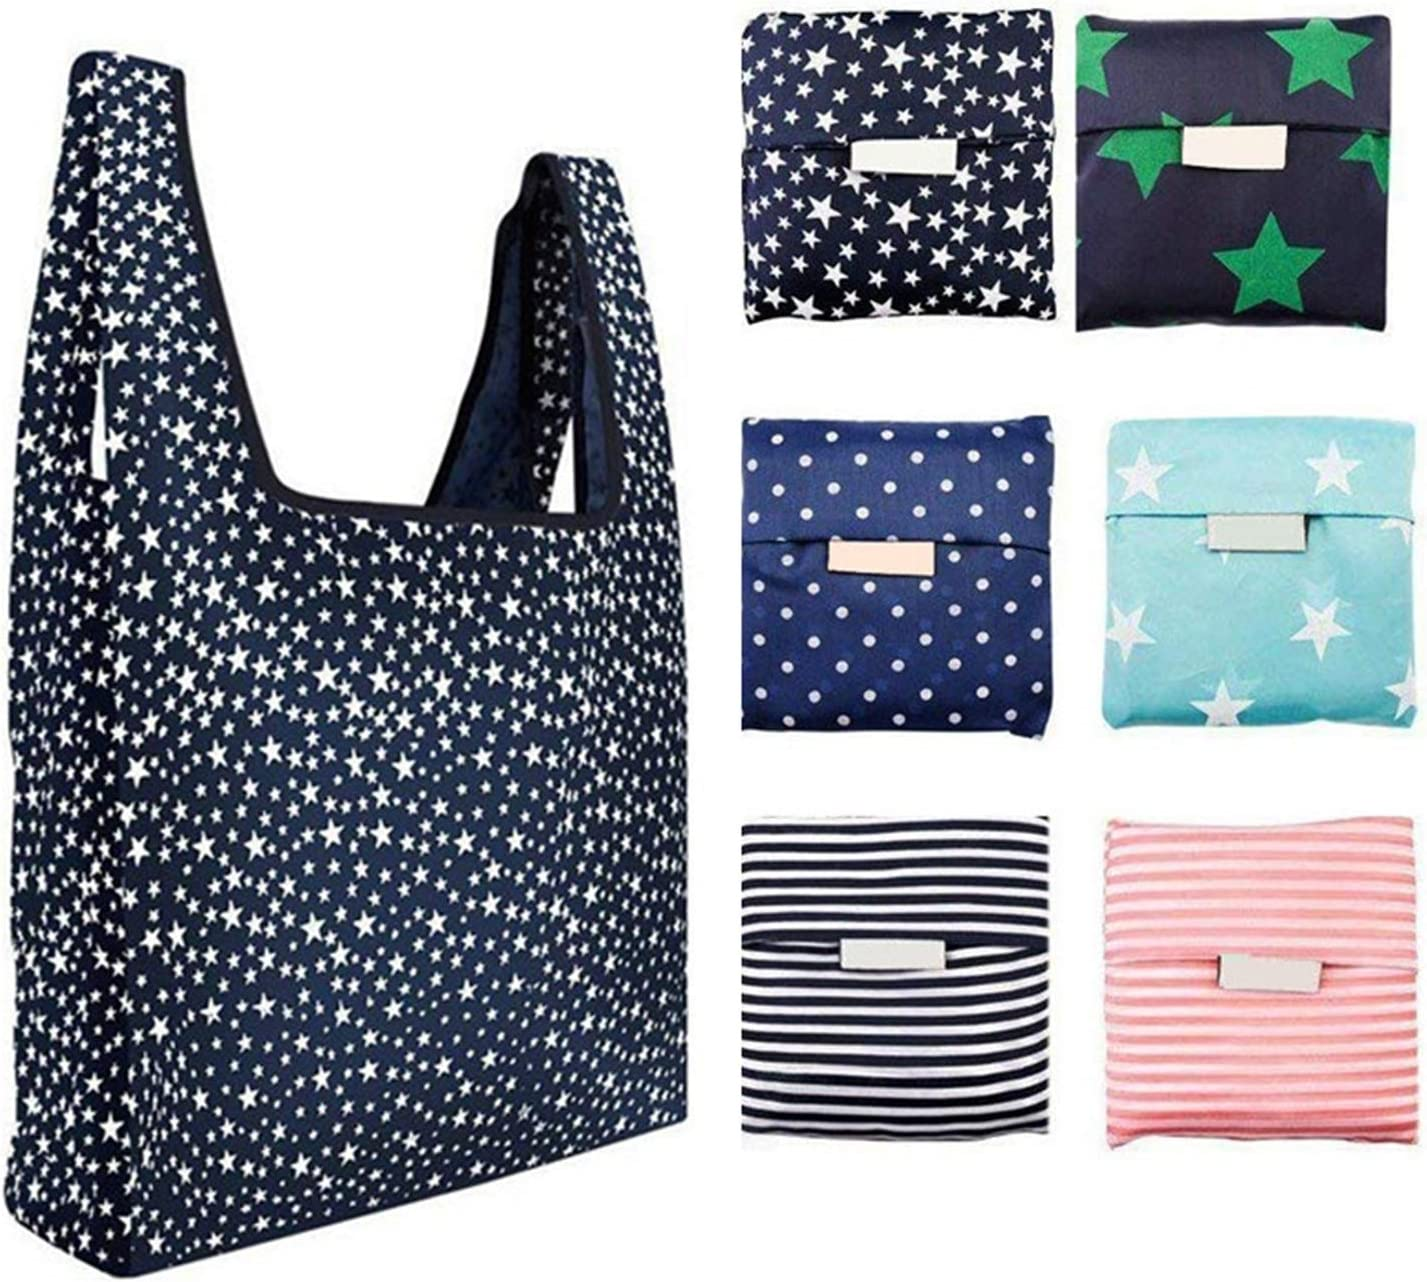 14 COLORS ECO FRIENDLY REUSABLE FOLDING SHOPPING GROCERY TOTE BAG NEW